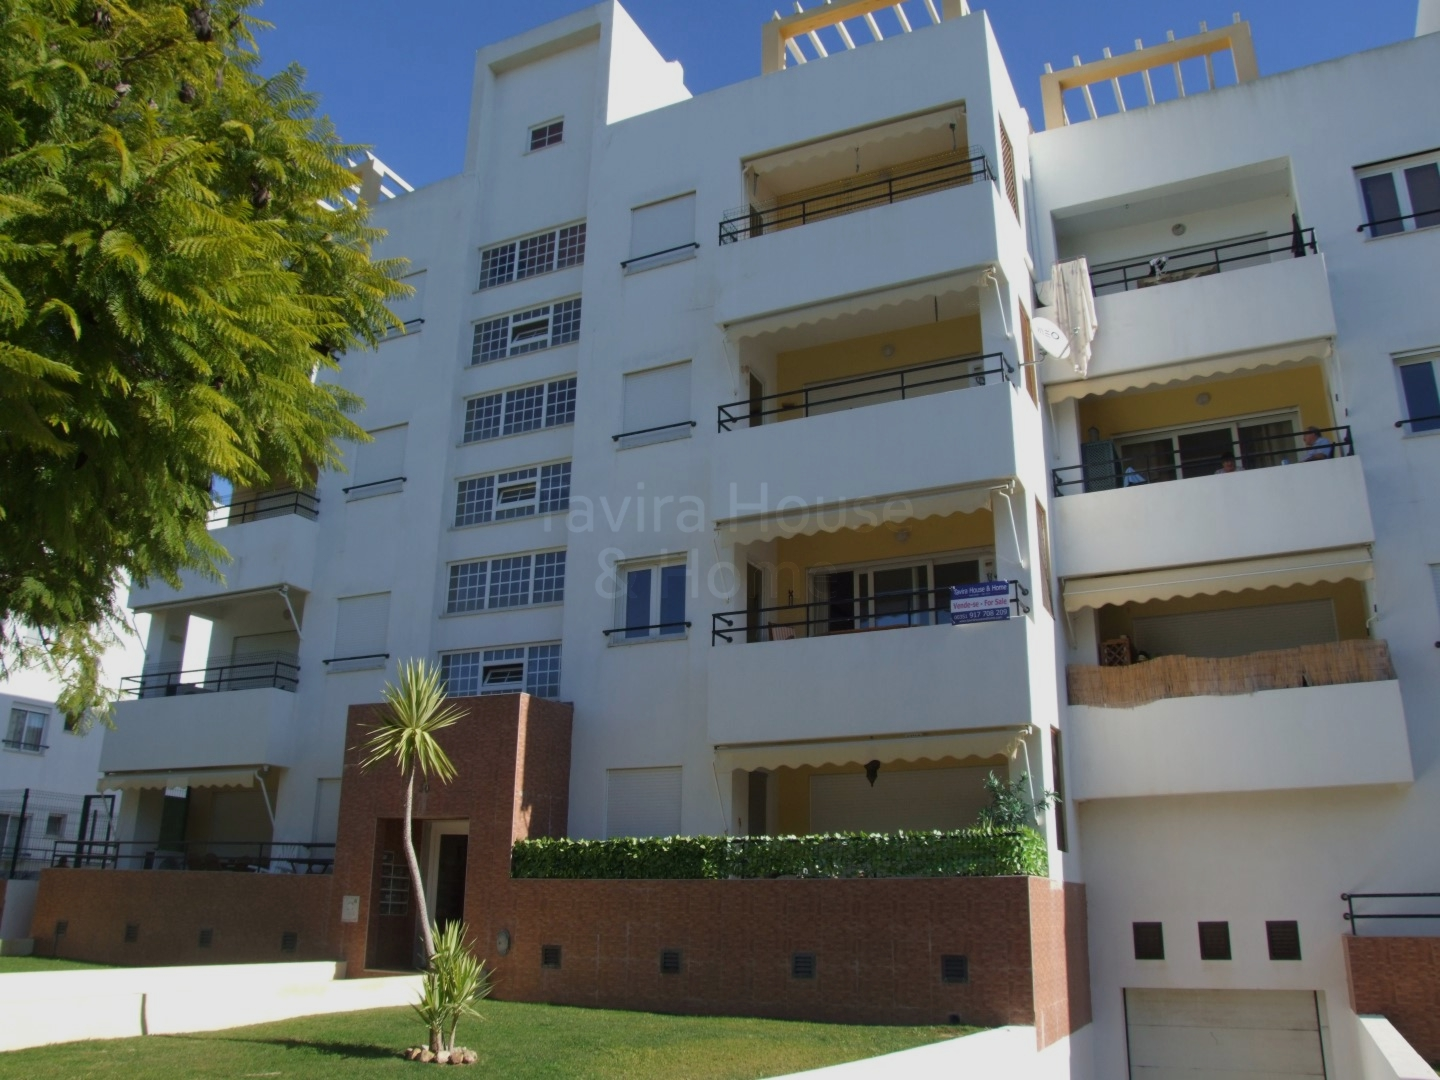 A0510 - 3 Bedroom Apartment With Pool  Tavira  Portugal